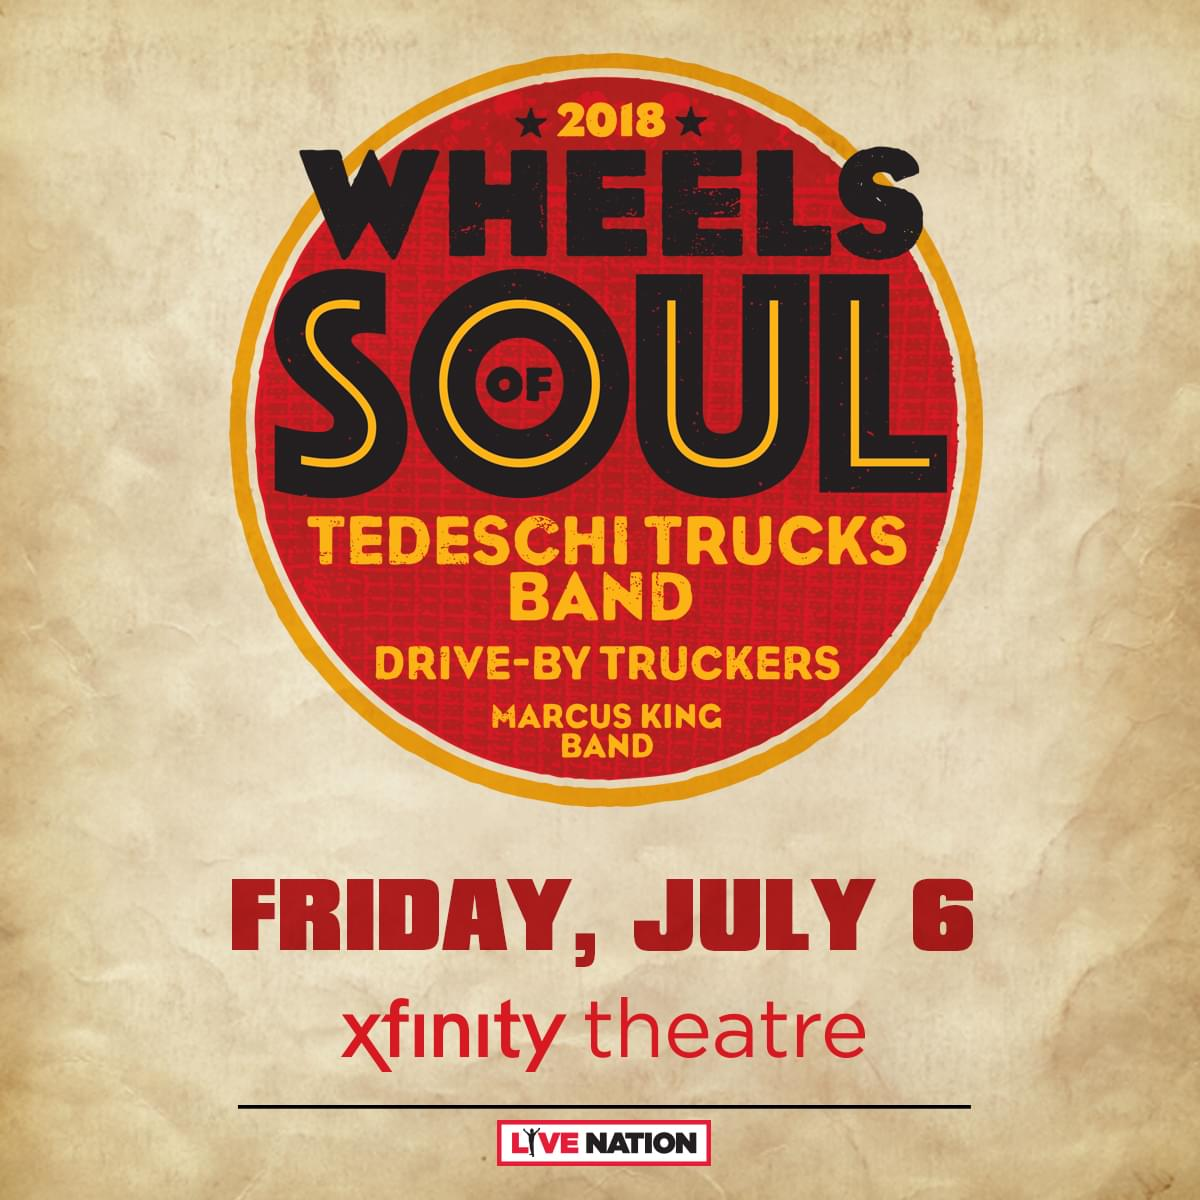 Win tickets to Tedeschi Trucks Band